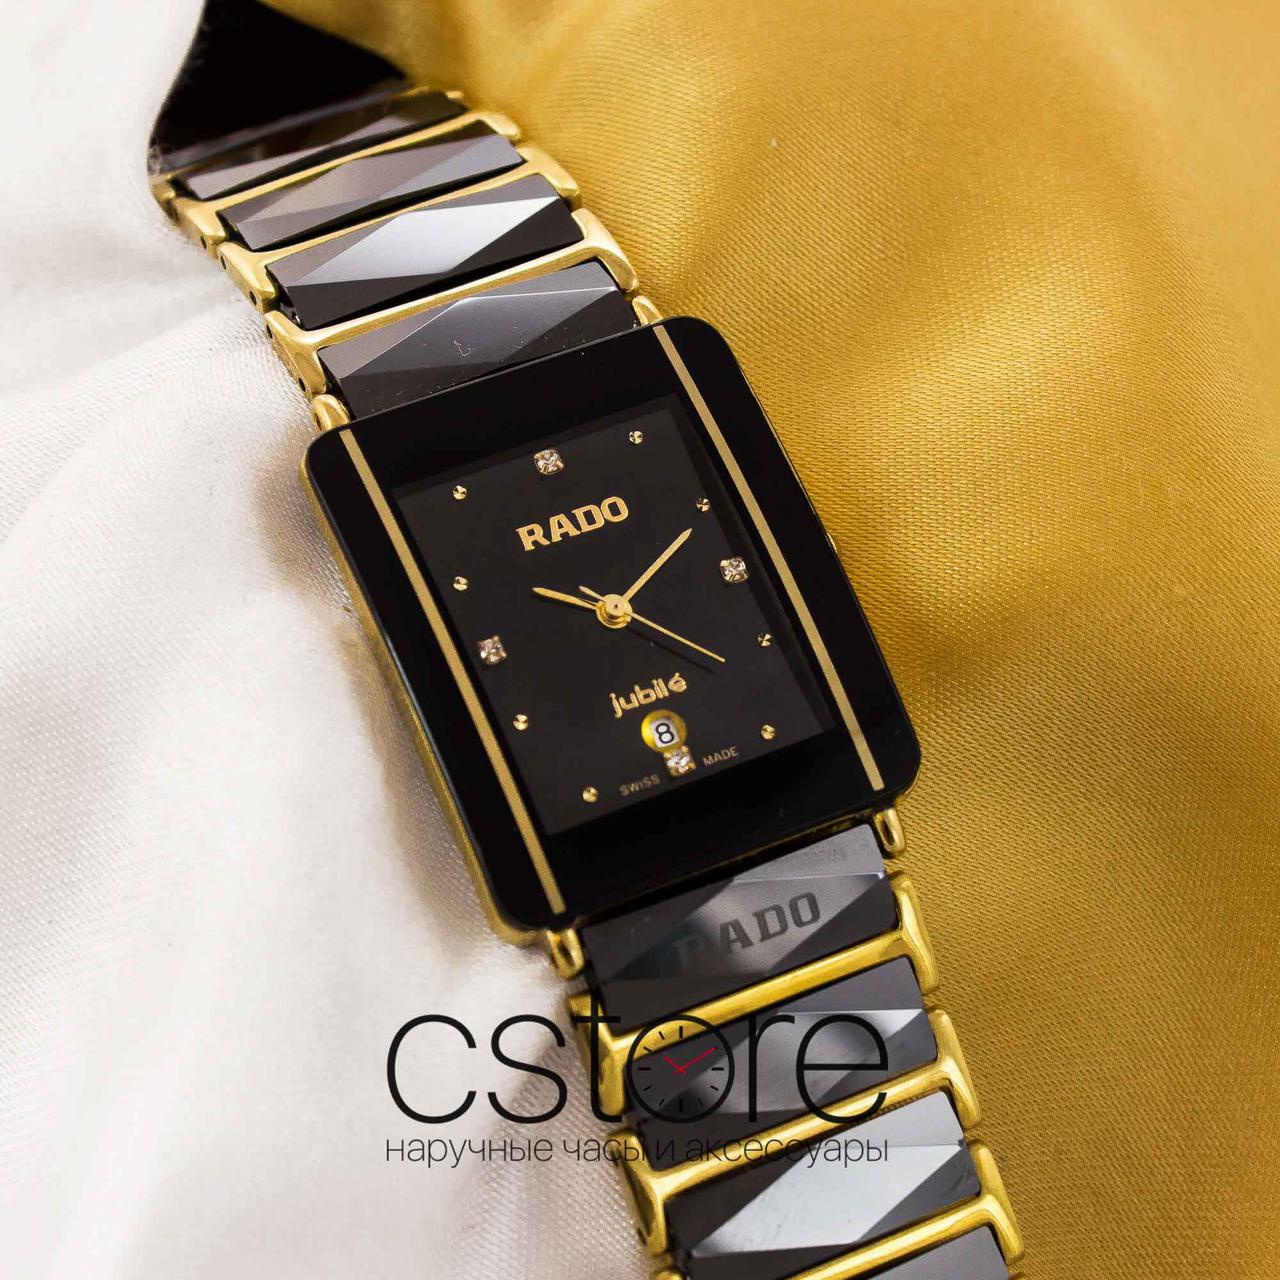 497a83565b80 Мужские наручные часы Rado integral gold black (05665) - megastore.net.ua